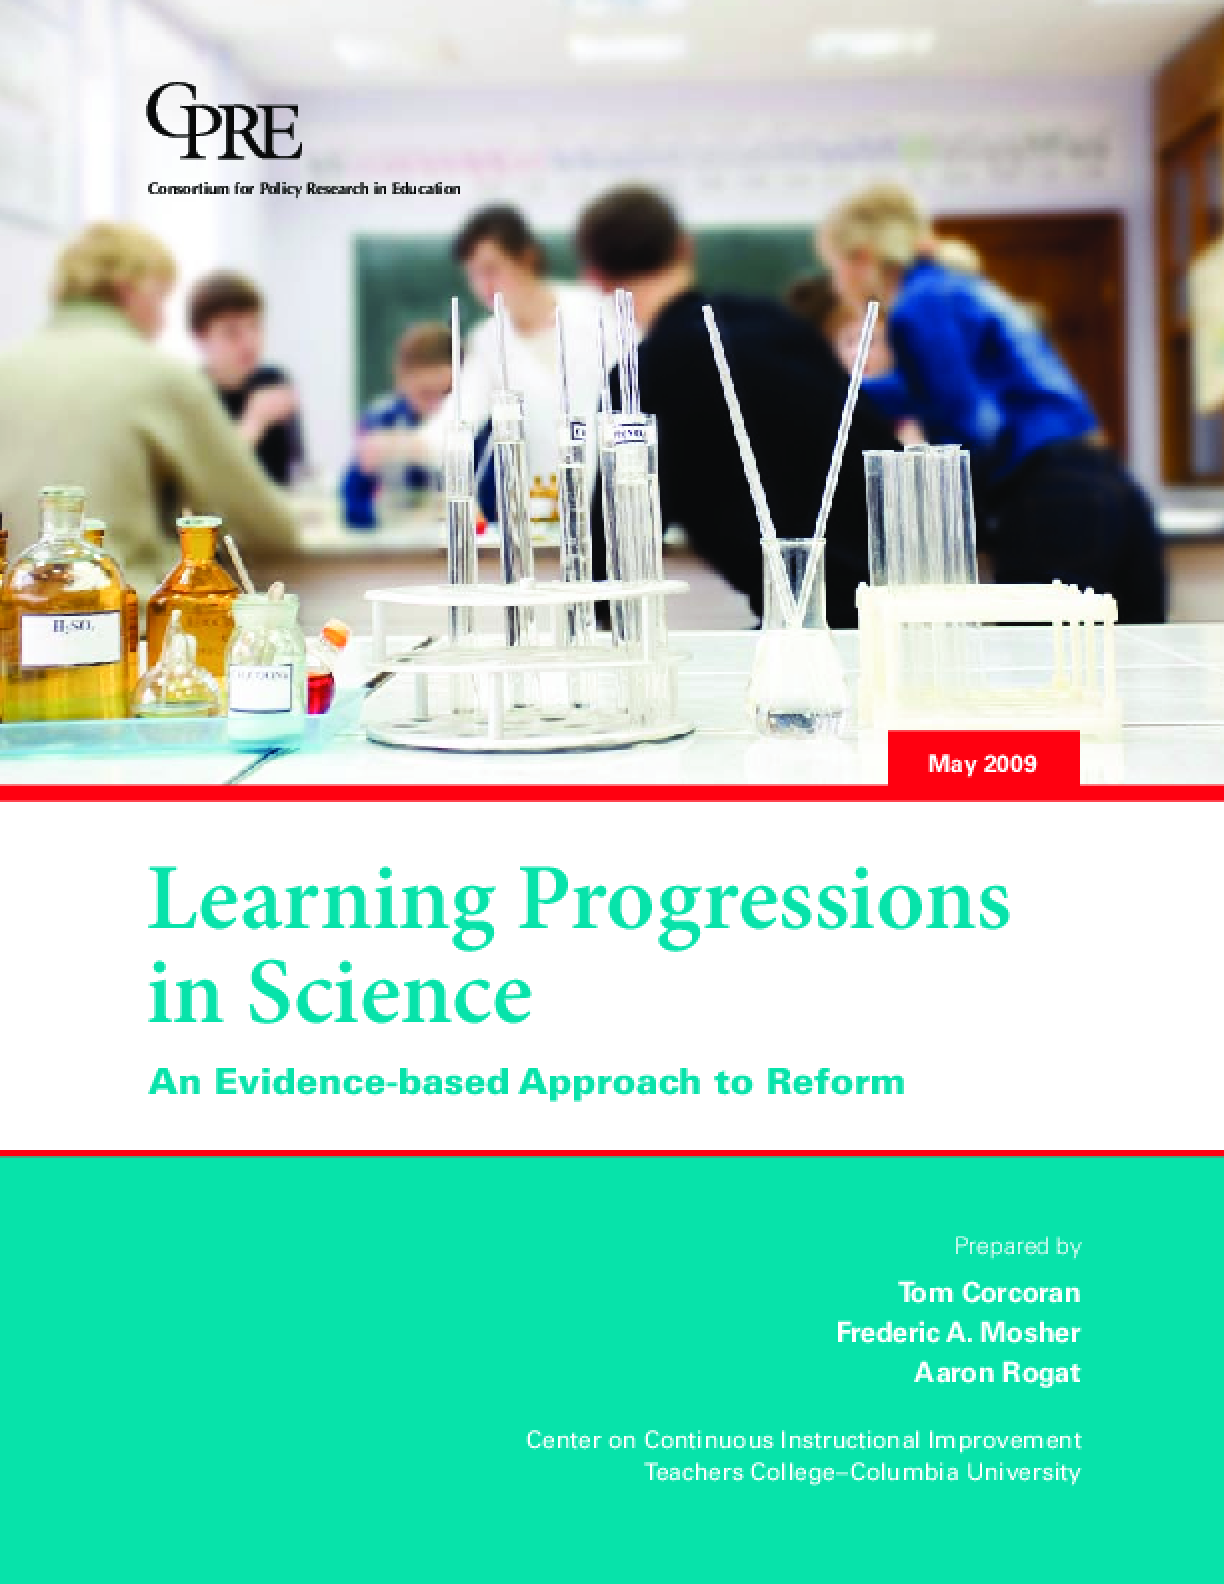 Learning Progressions in Science: An Evidence-Based Approach to Reform